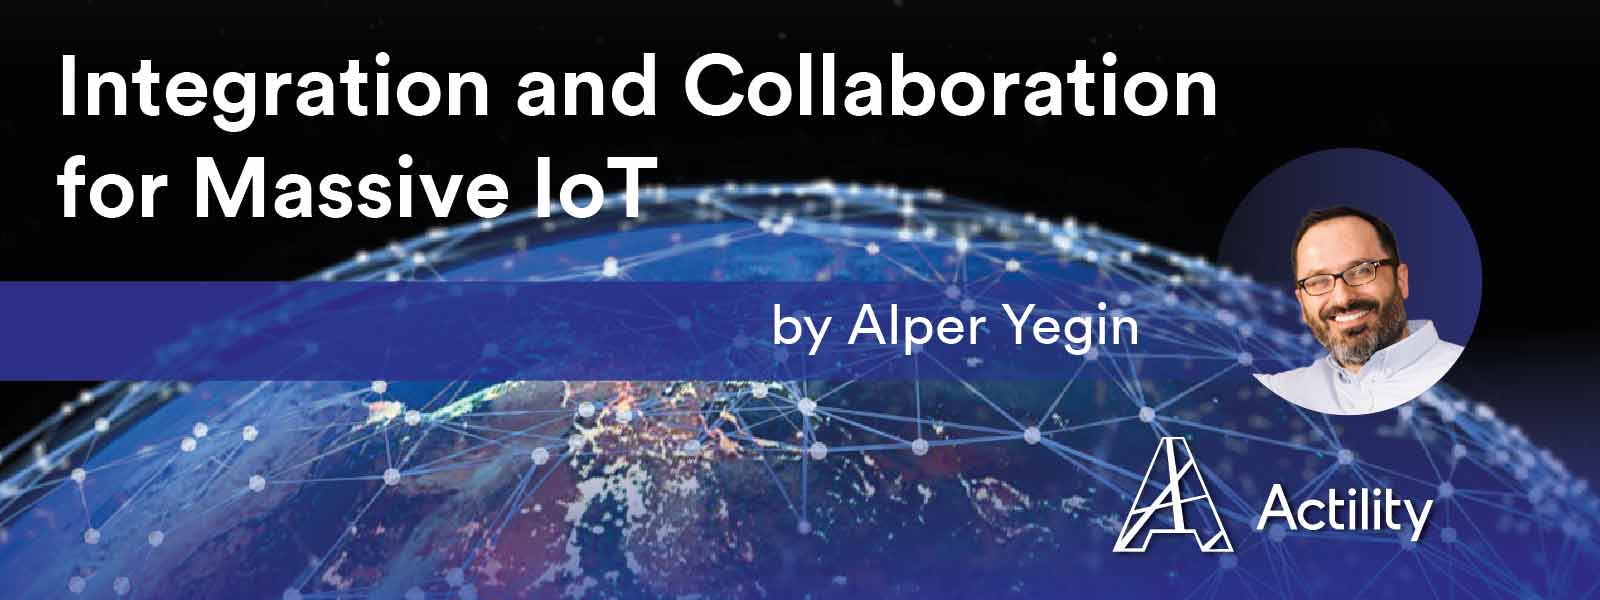 Header for Integration and Collaboration for Massive IoT